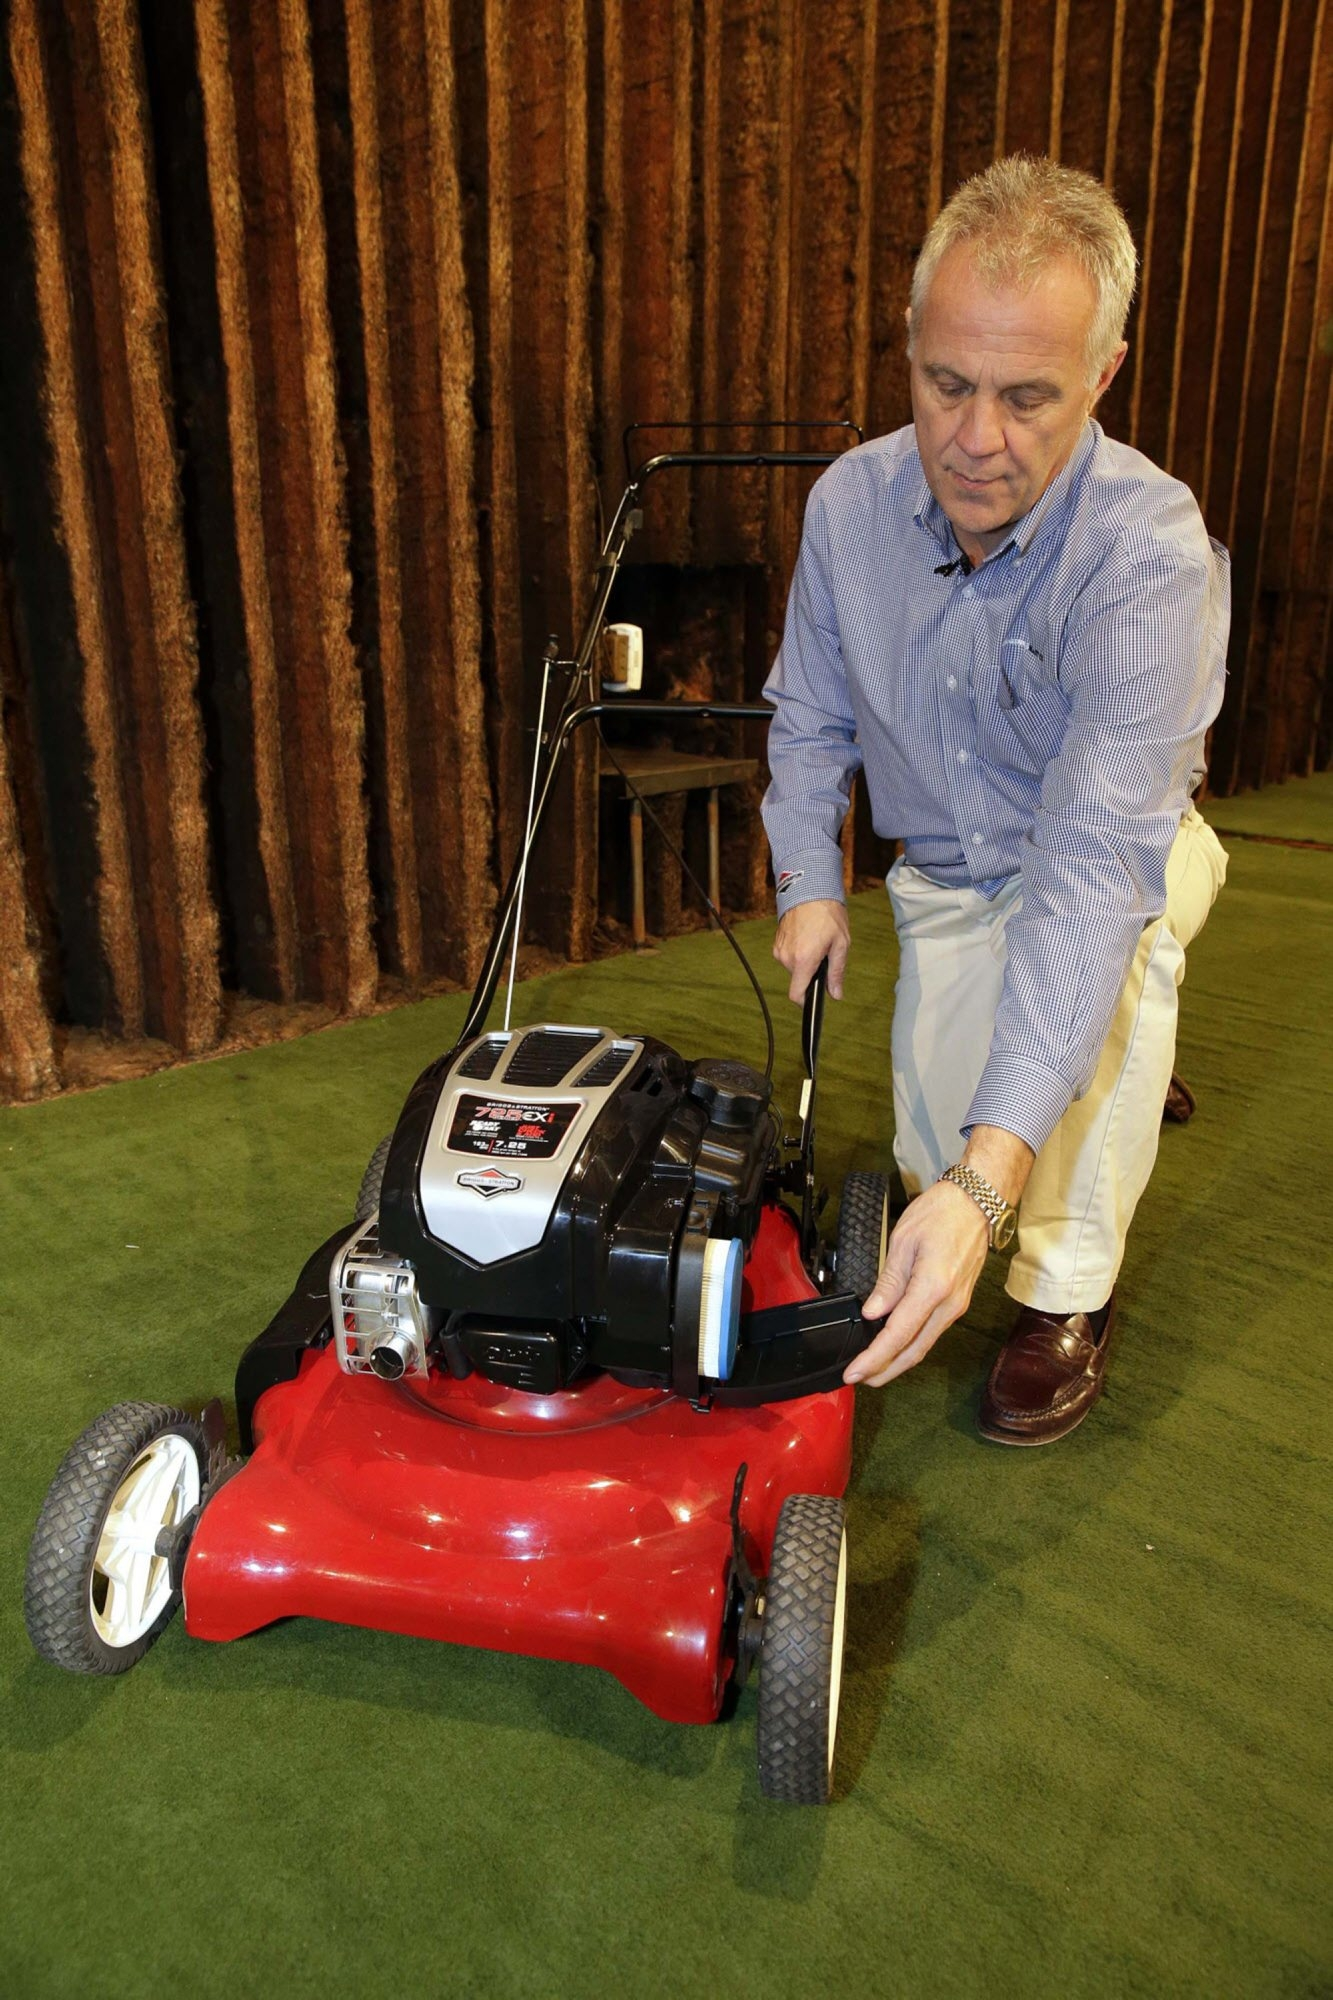 Rick Zeckmeister, vice president of marketing and planning at Briggs & Stratton, shows the features of the industry's first small four-stroke gasoline engine.